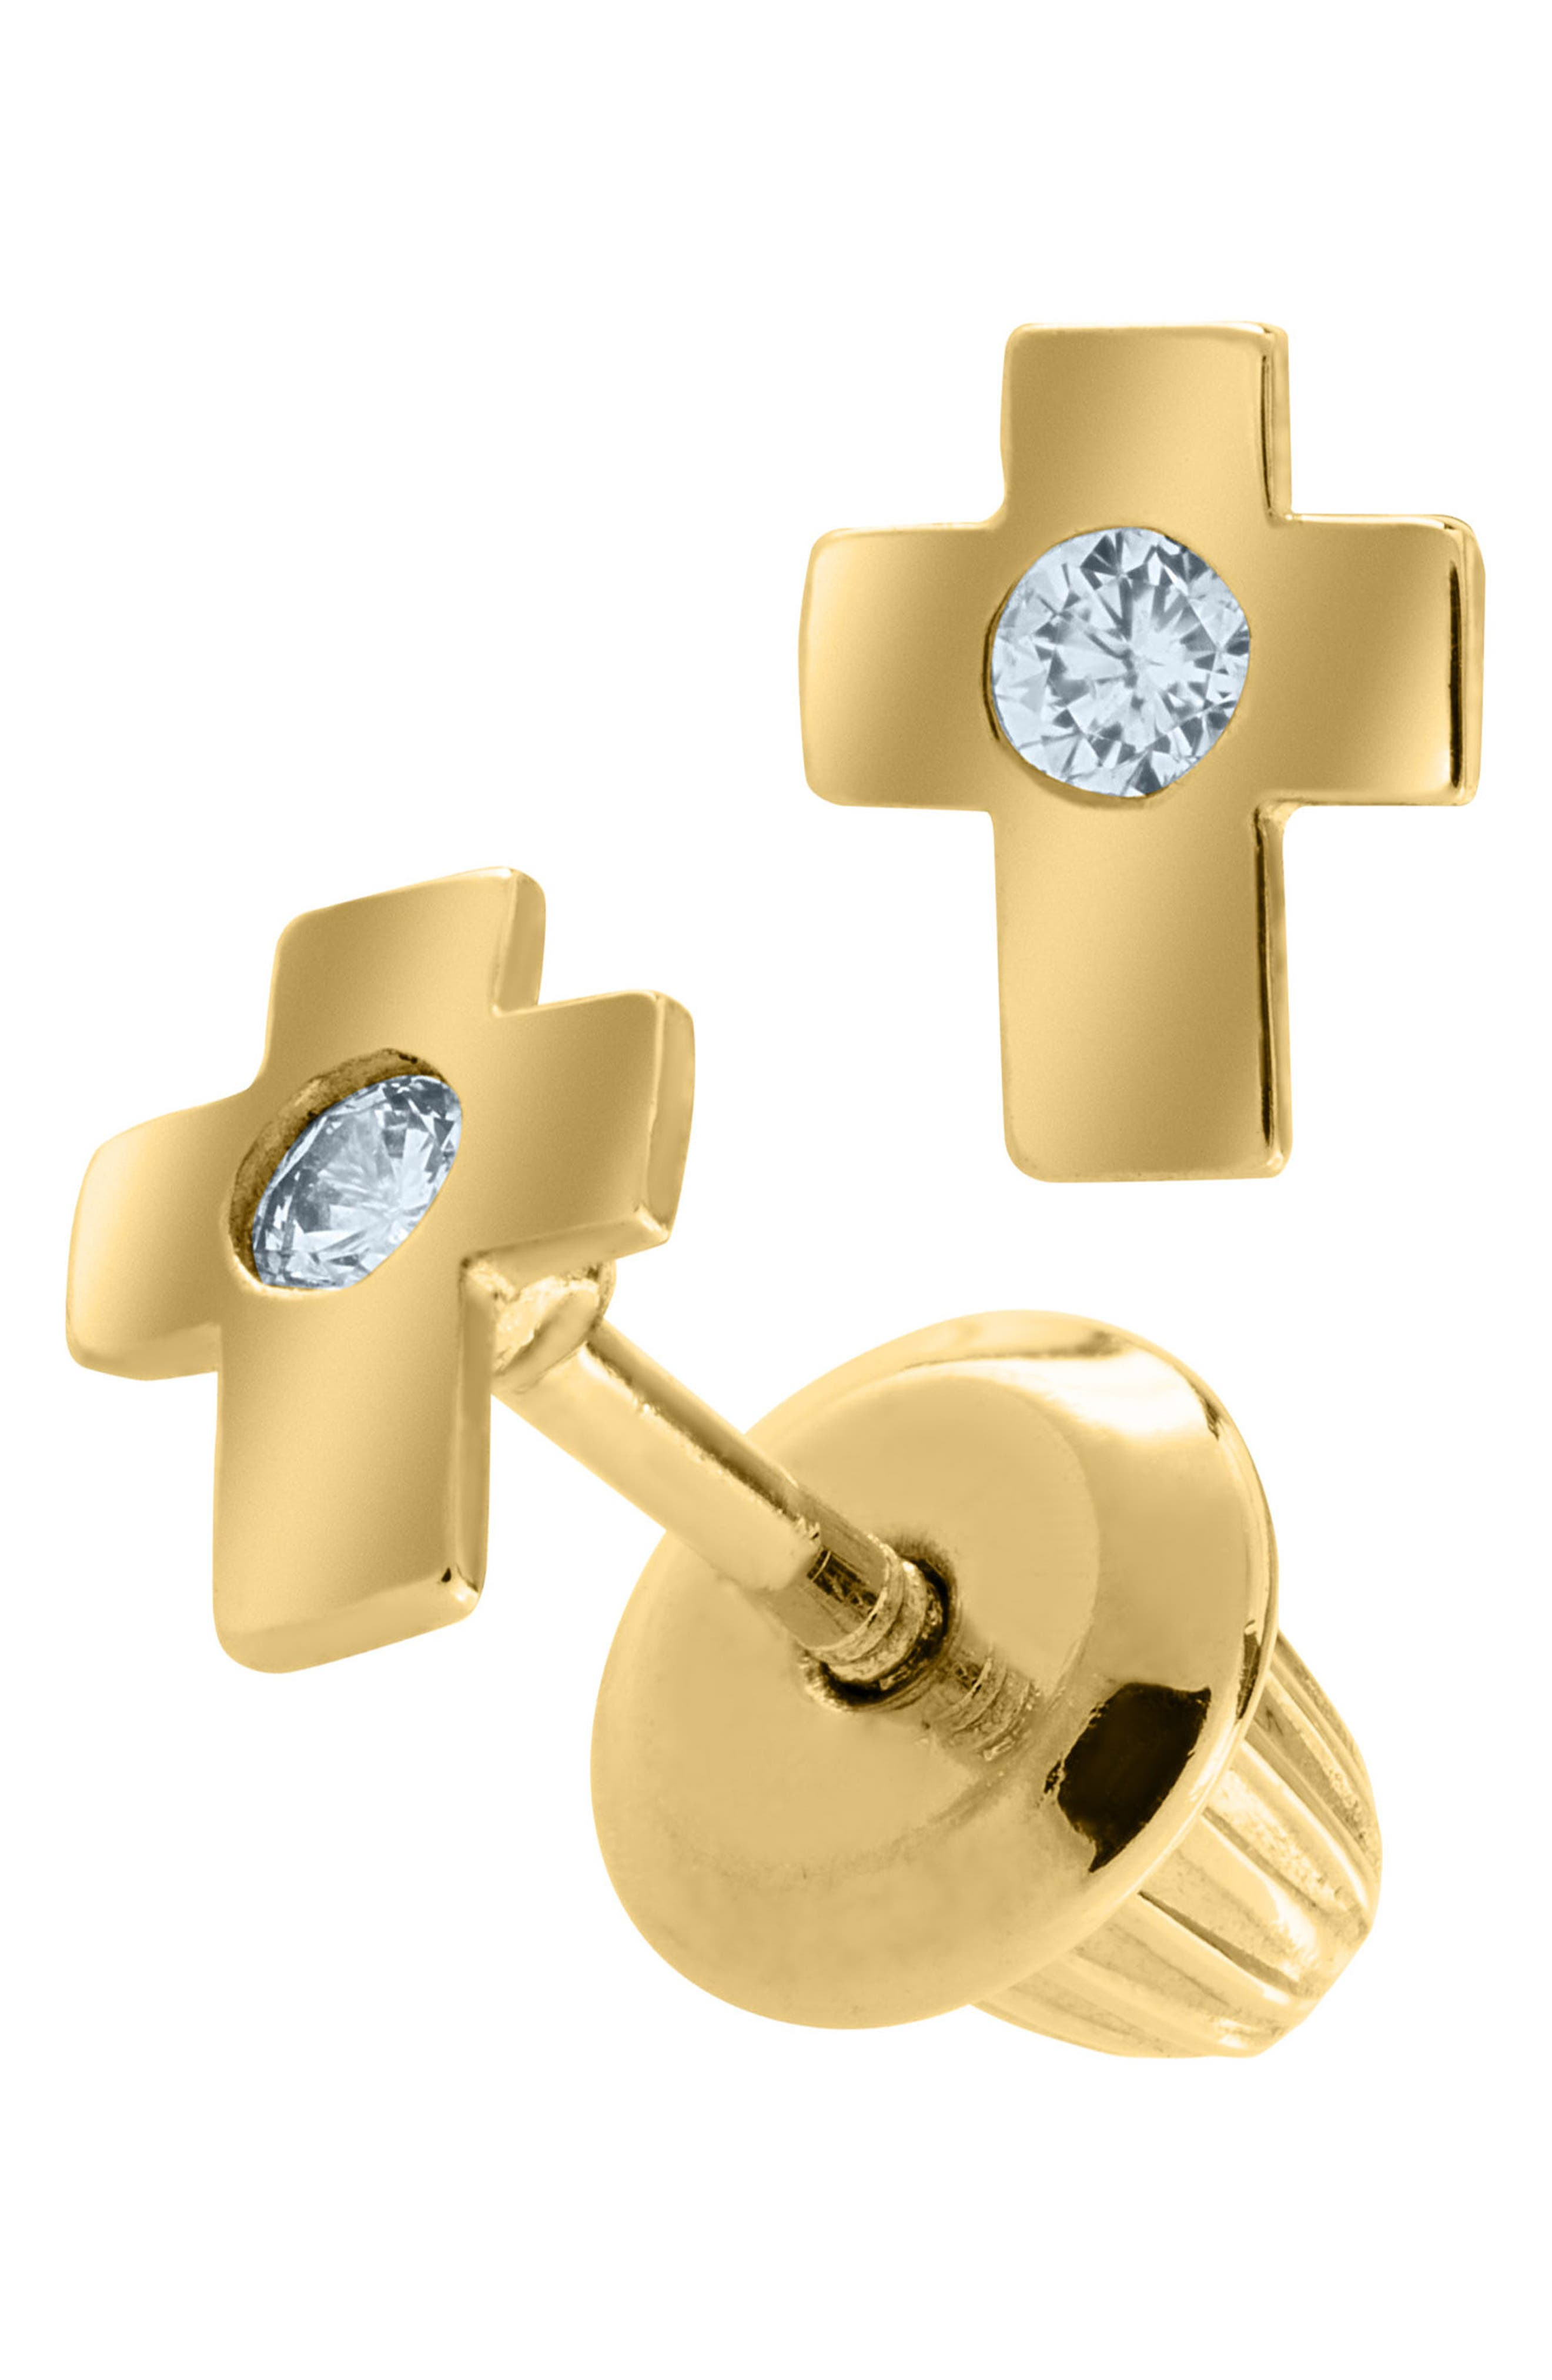 14k Gold & Cubic Zirconia Cross Earrings,                             Alternate thumbnail 2, color,                             GOLD